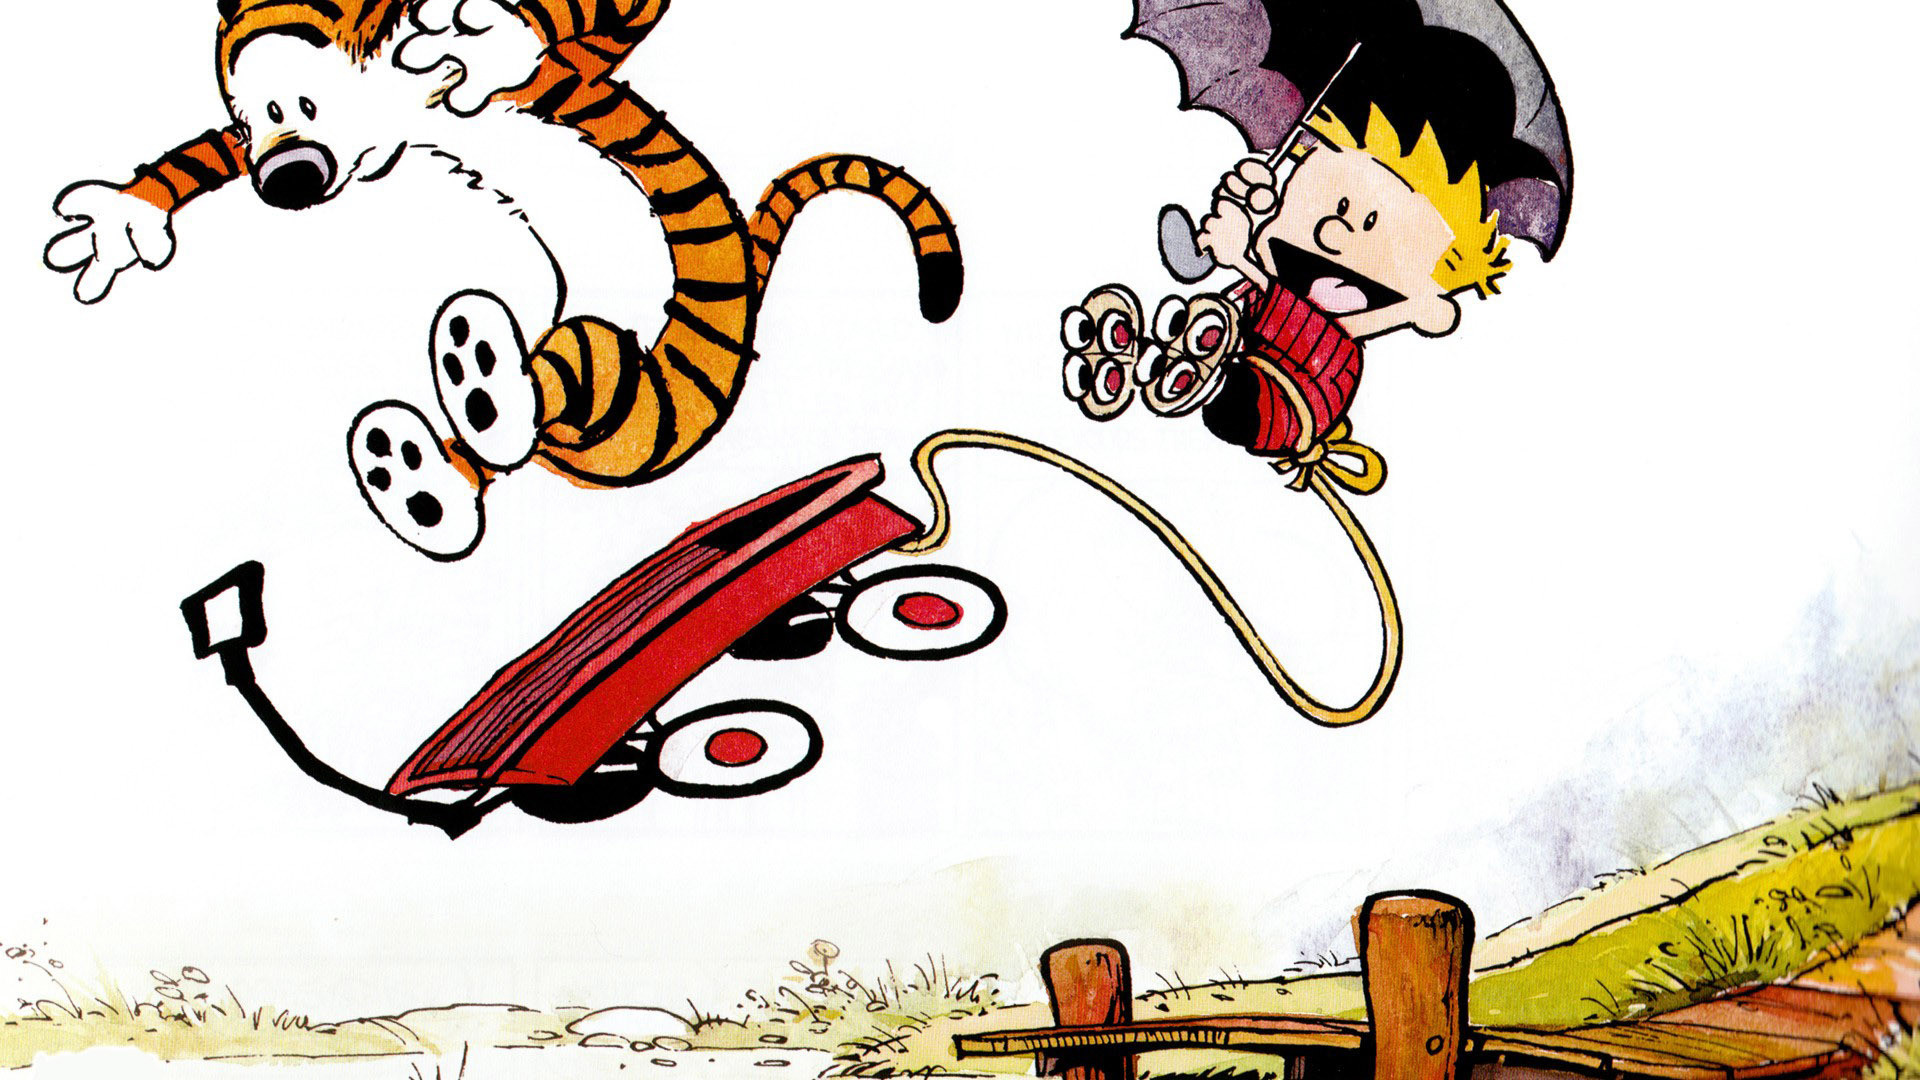 1920x1080 Calvin and Hobbes HD Wallpaper